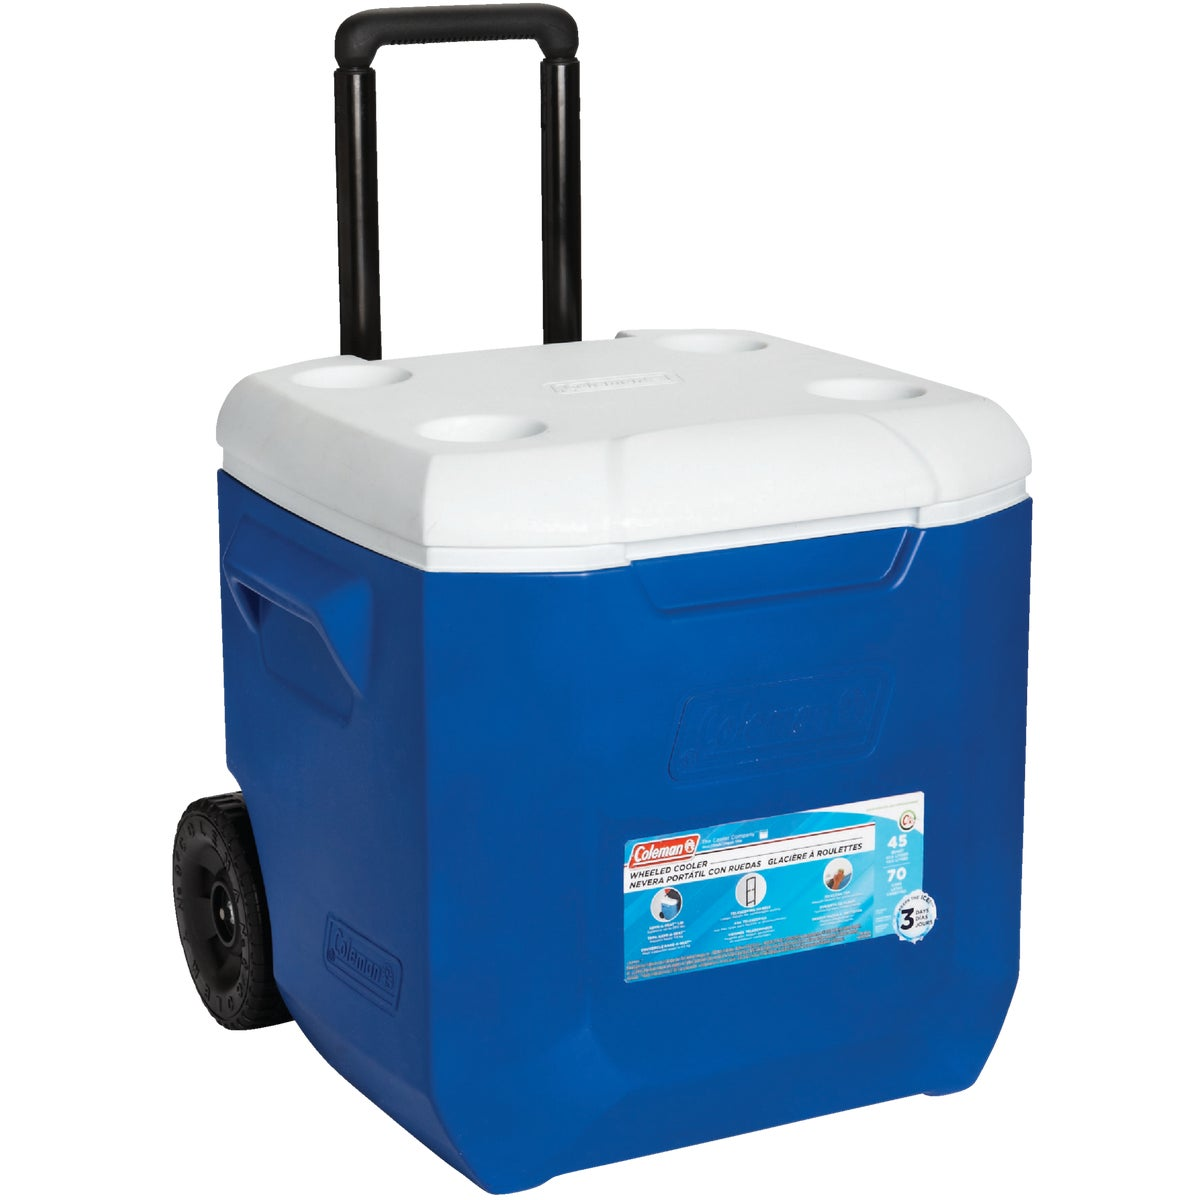 45QT WHLD BLU/WHT COOLER - 3000002455 by Coleman